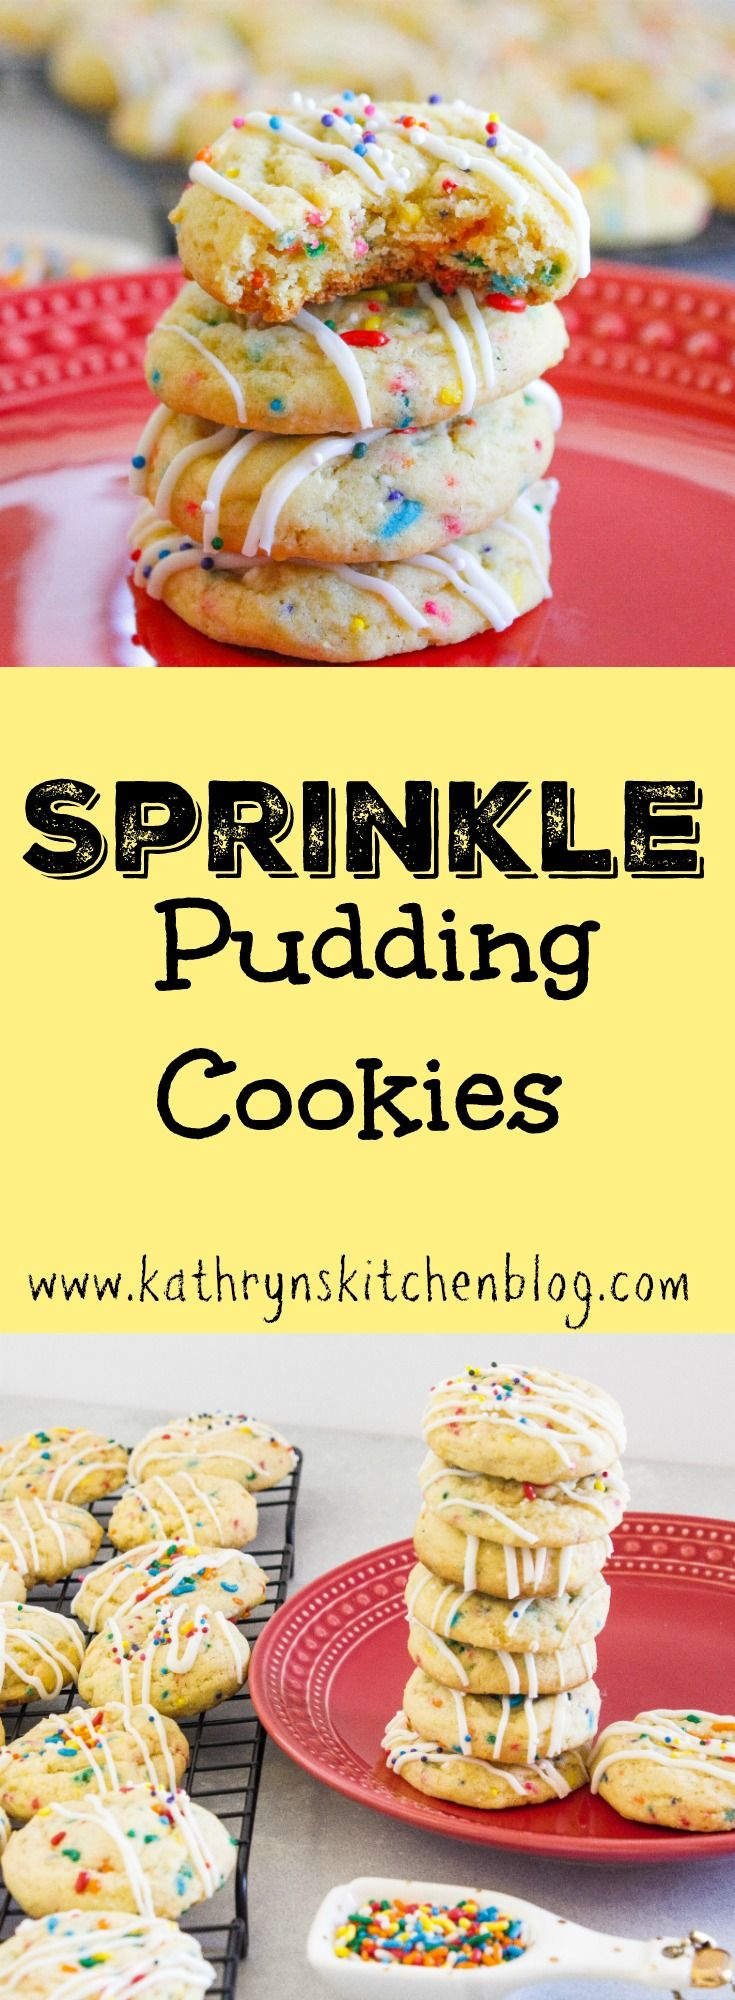 Sprinkle Pudding Cookies// Kathryn's Kitchen Blog